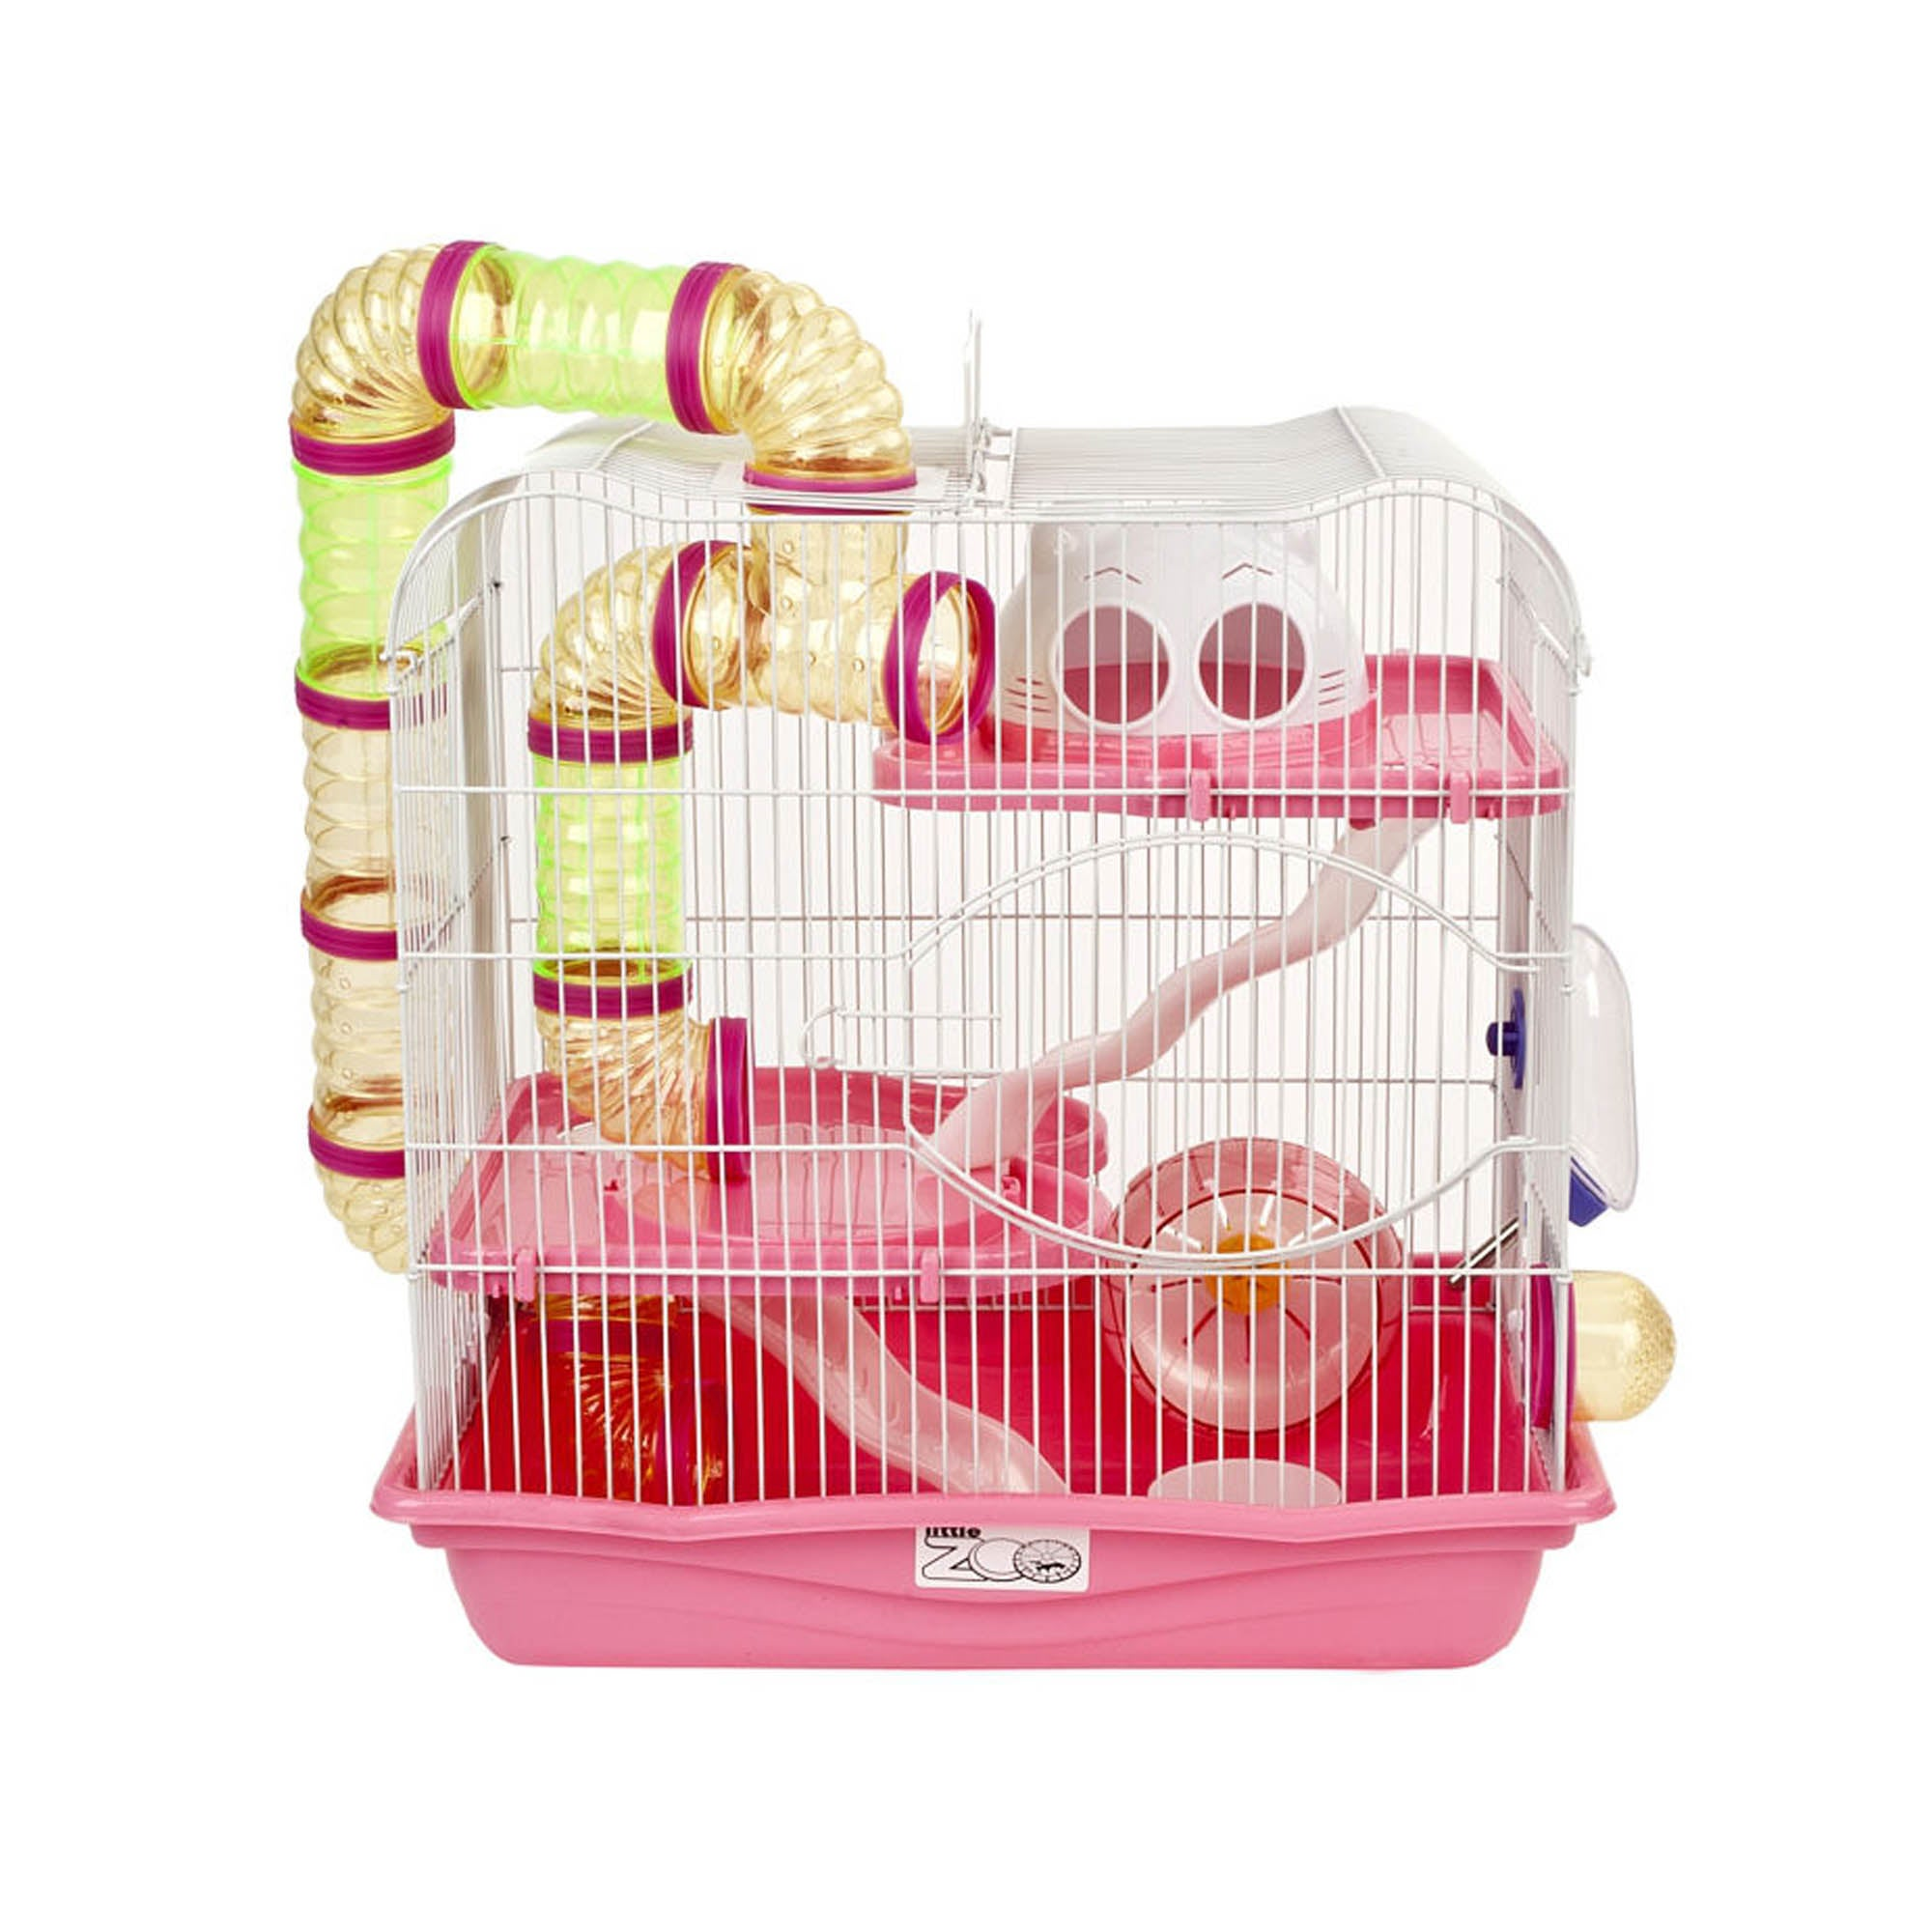 Henry Pink Hamster Cage Strawberry (Pink)